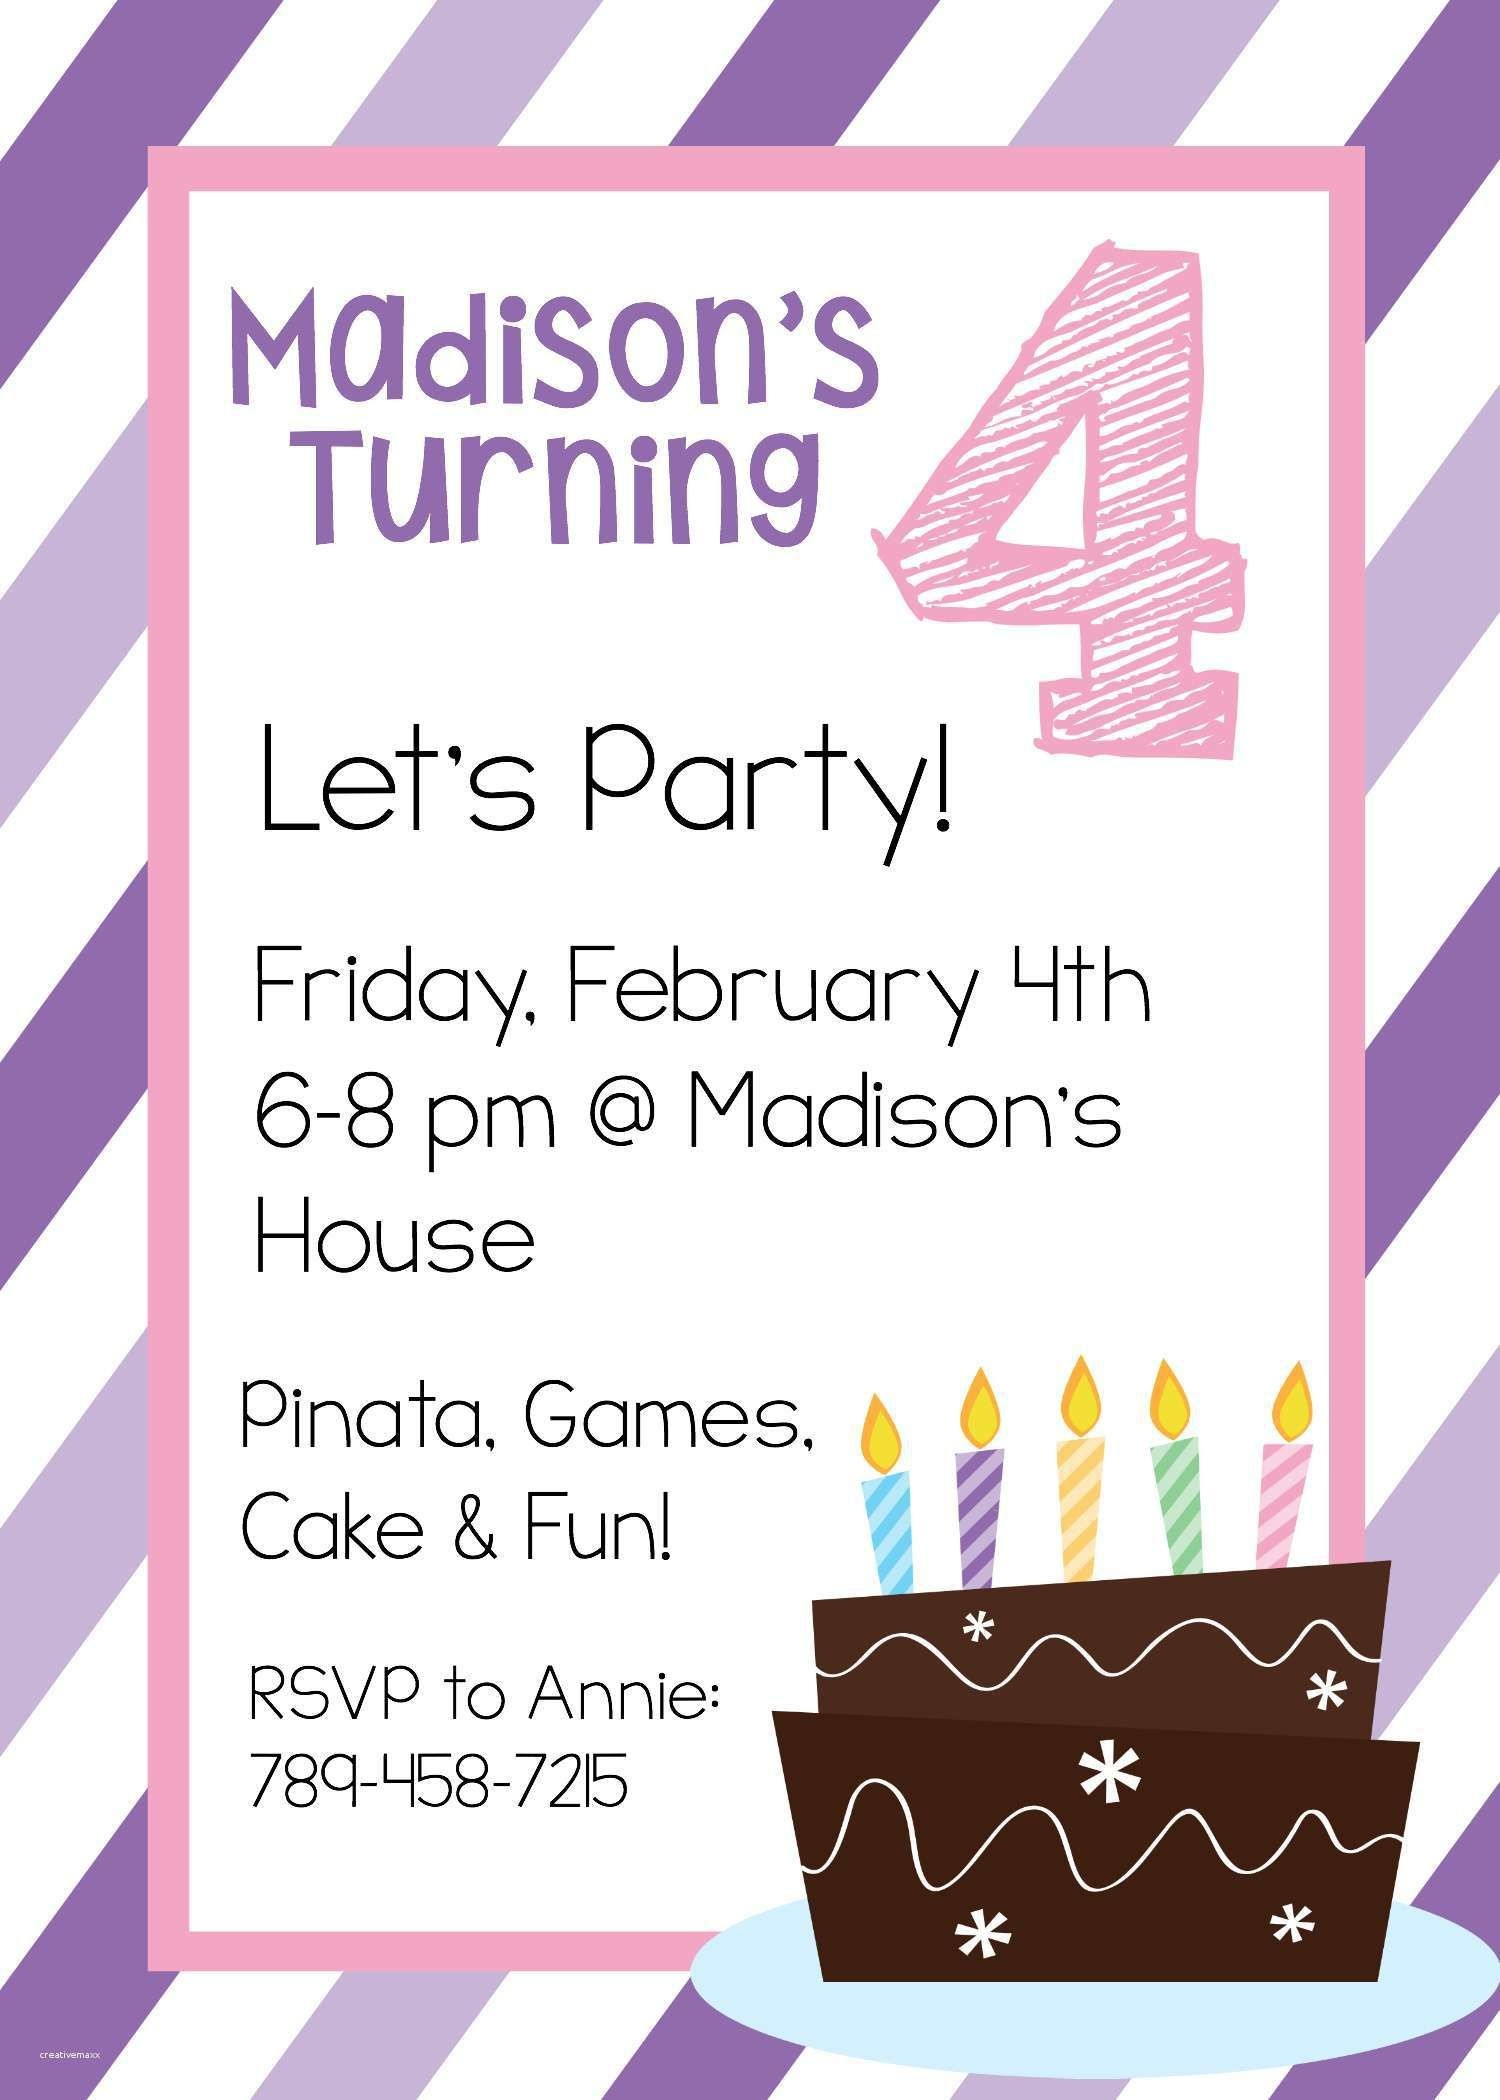 New Free Online Printable Birthday Party Invitations | Holiday - Free Online Printable Invitations